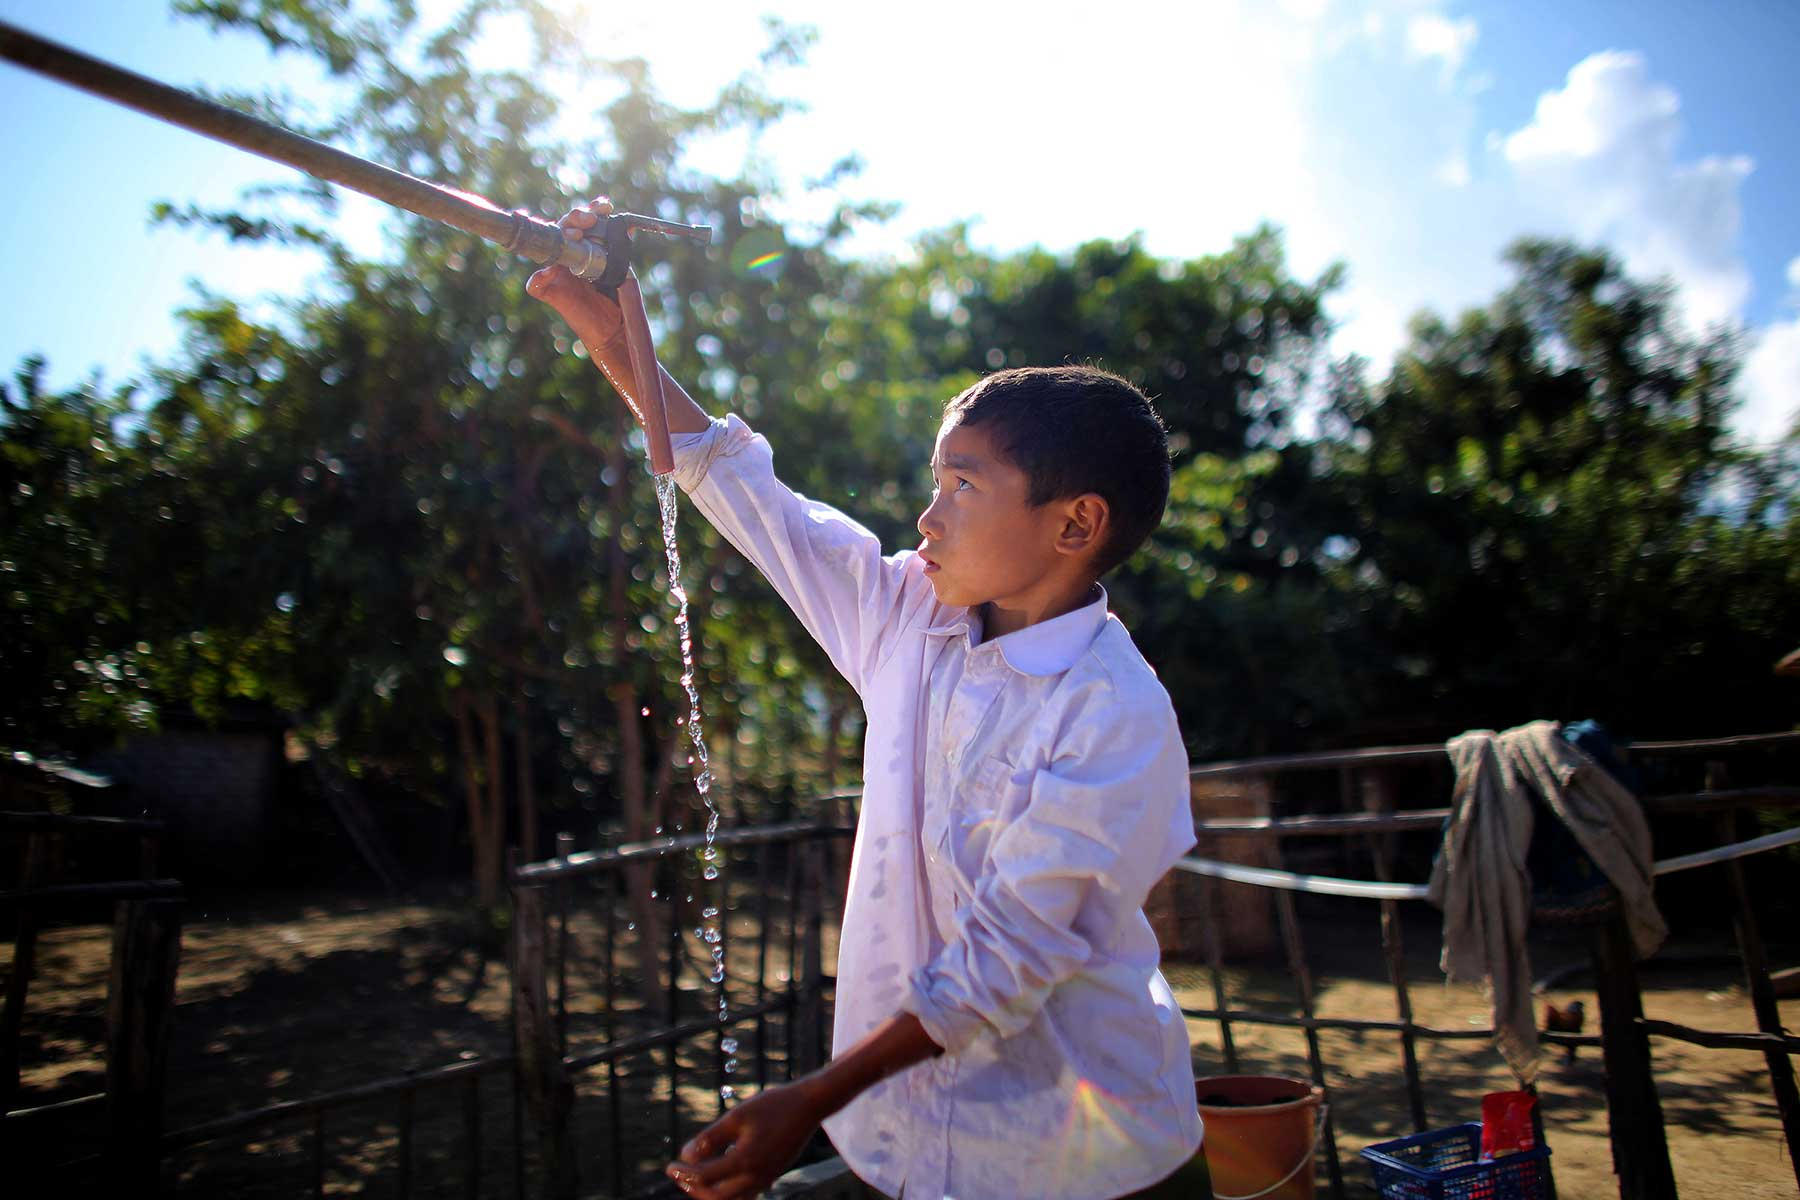 A Lao village boy washes his hands under the village tap